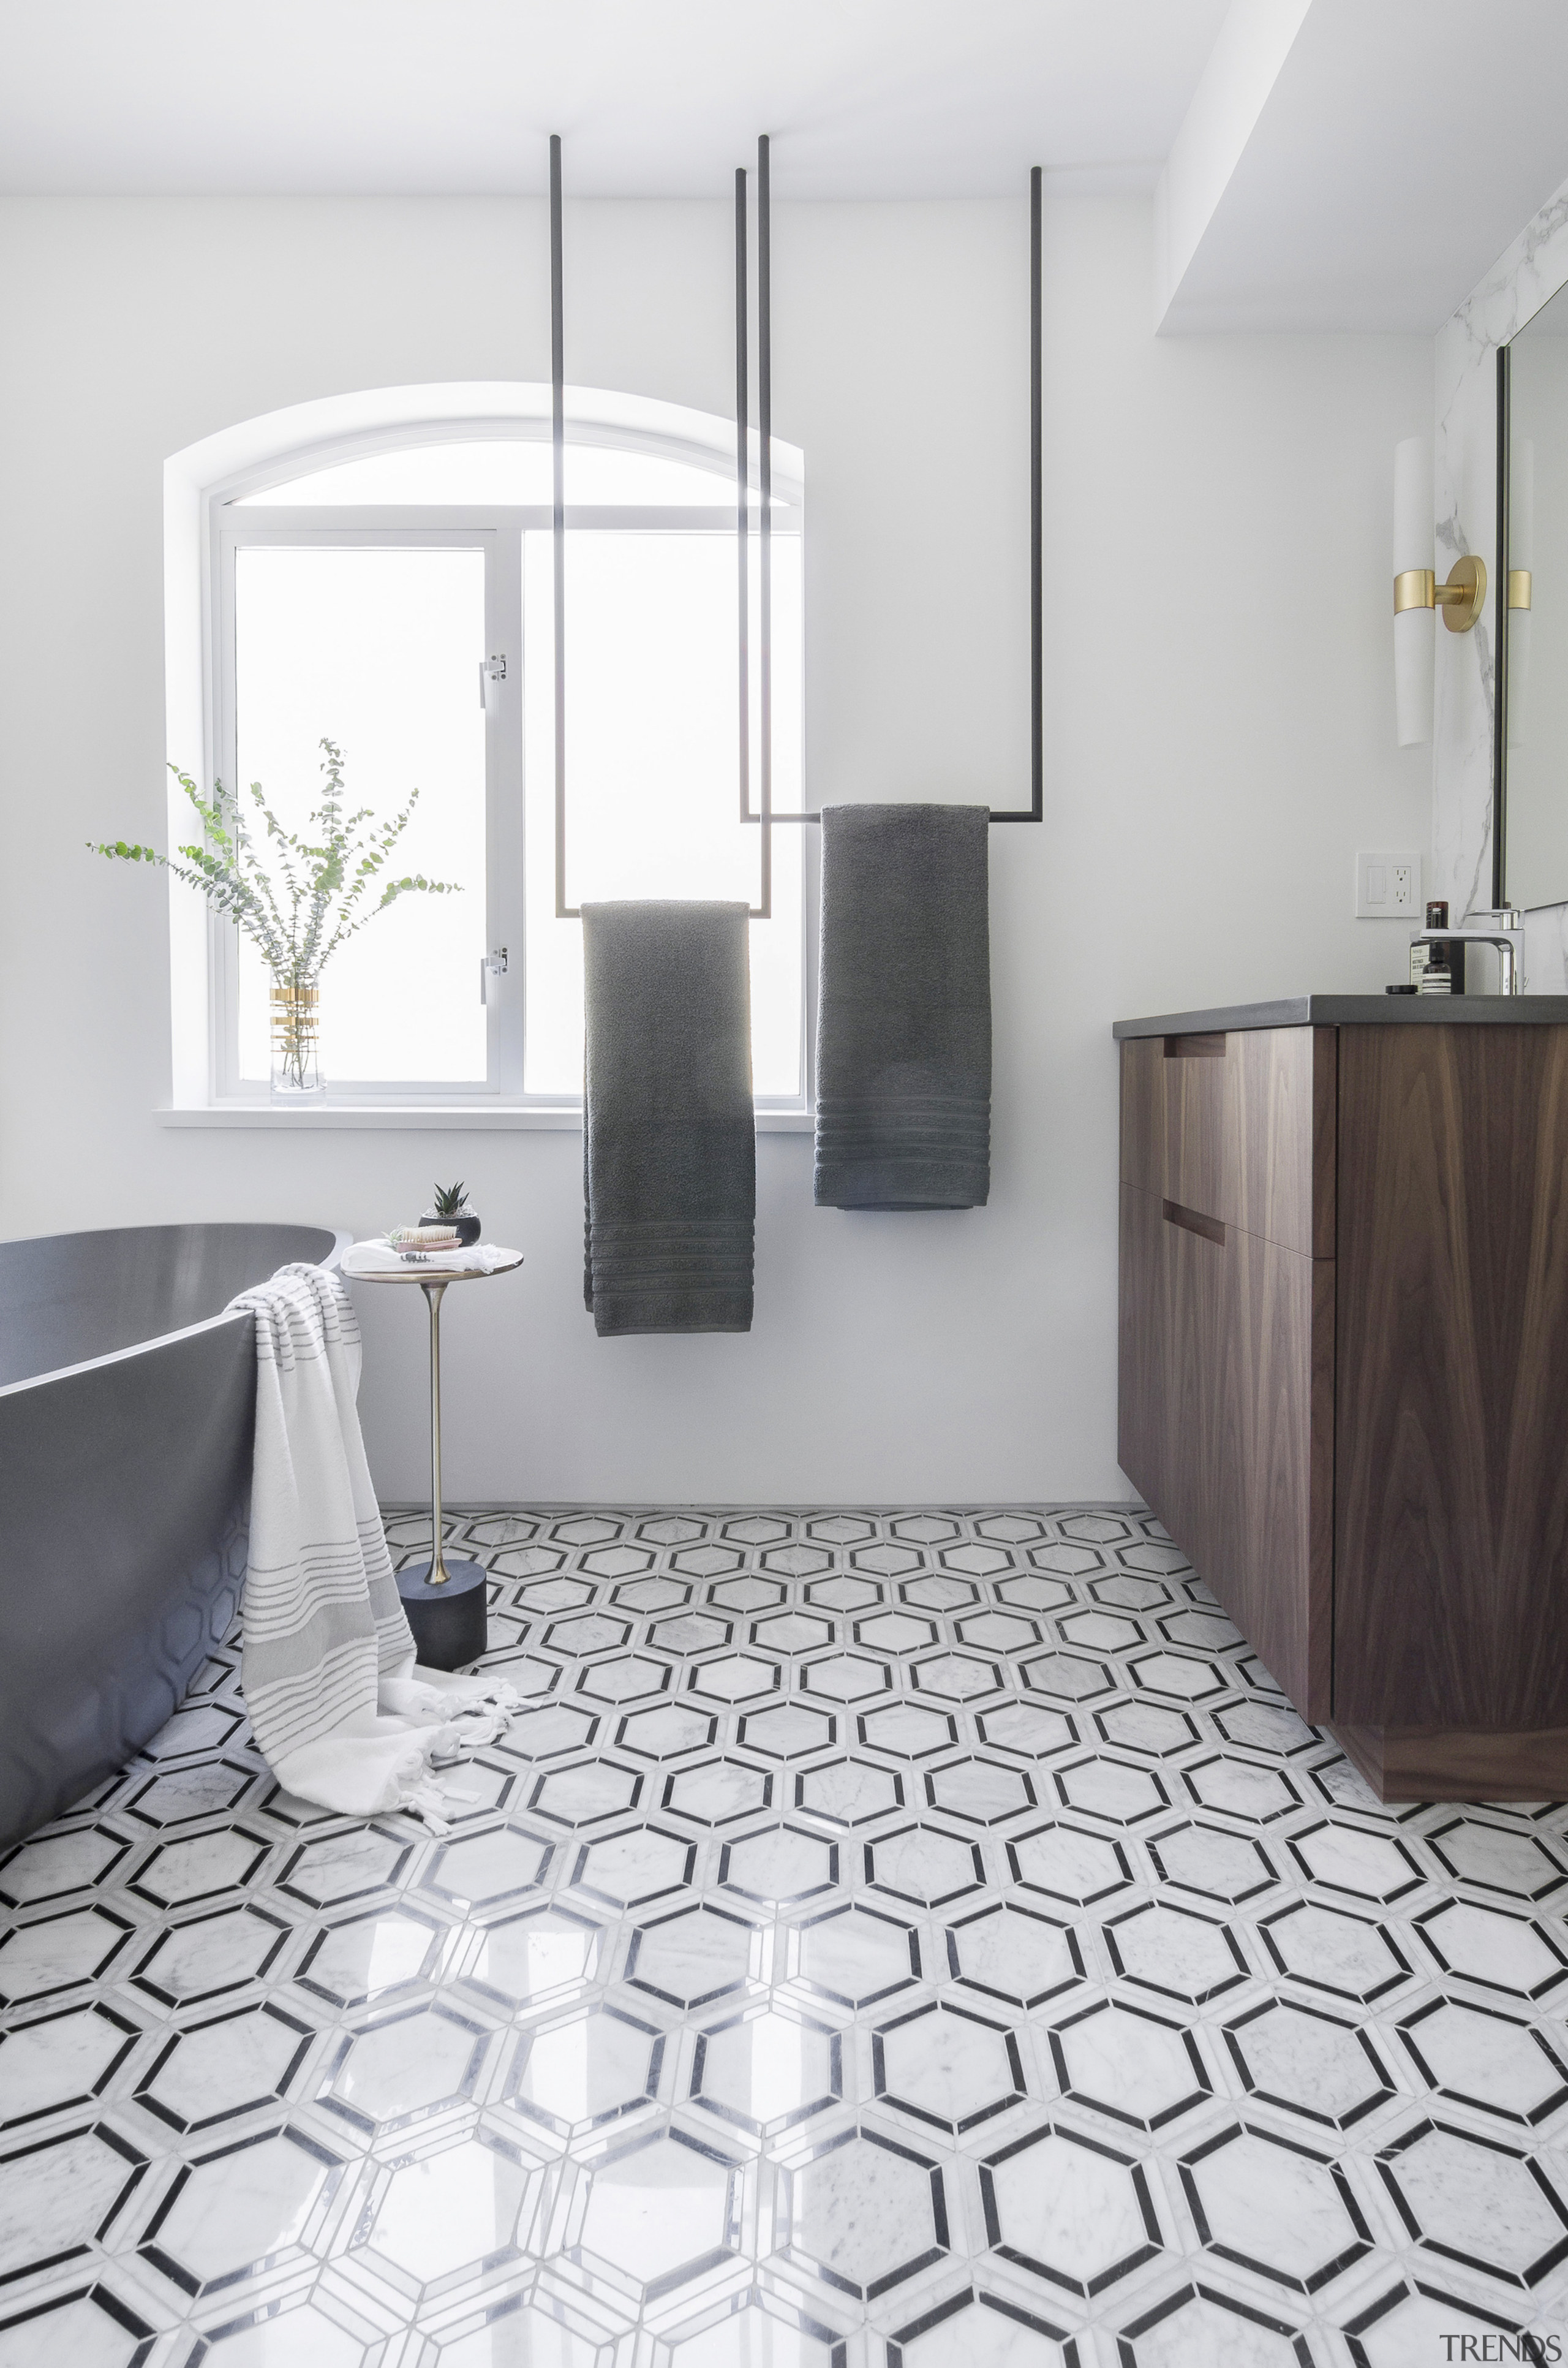 The master ensuite was intended to be a